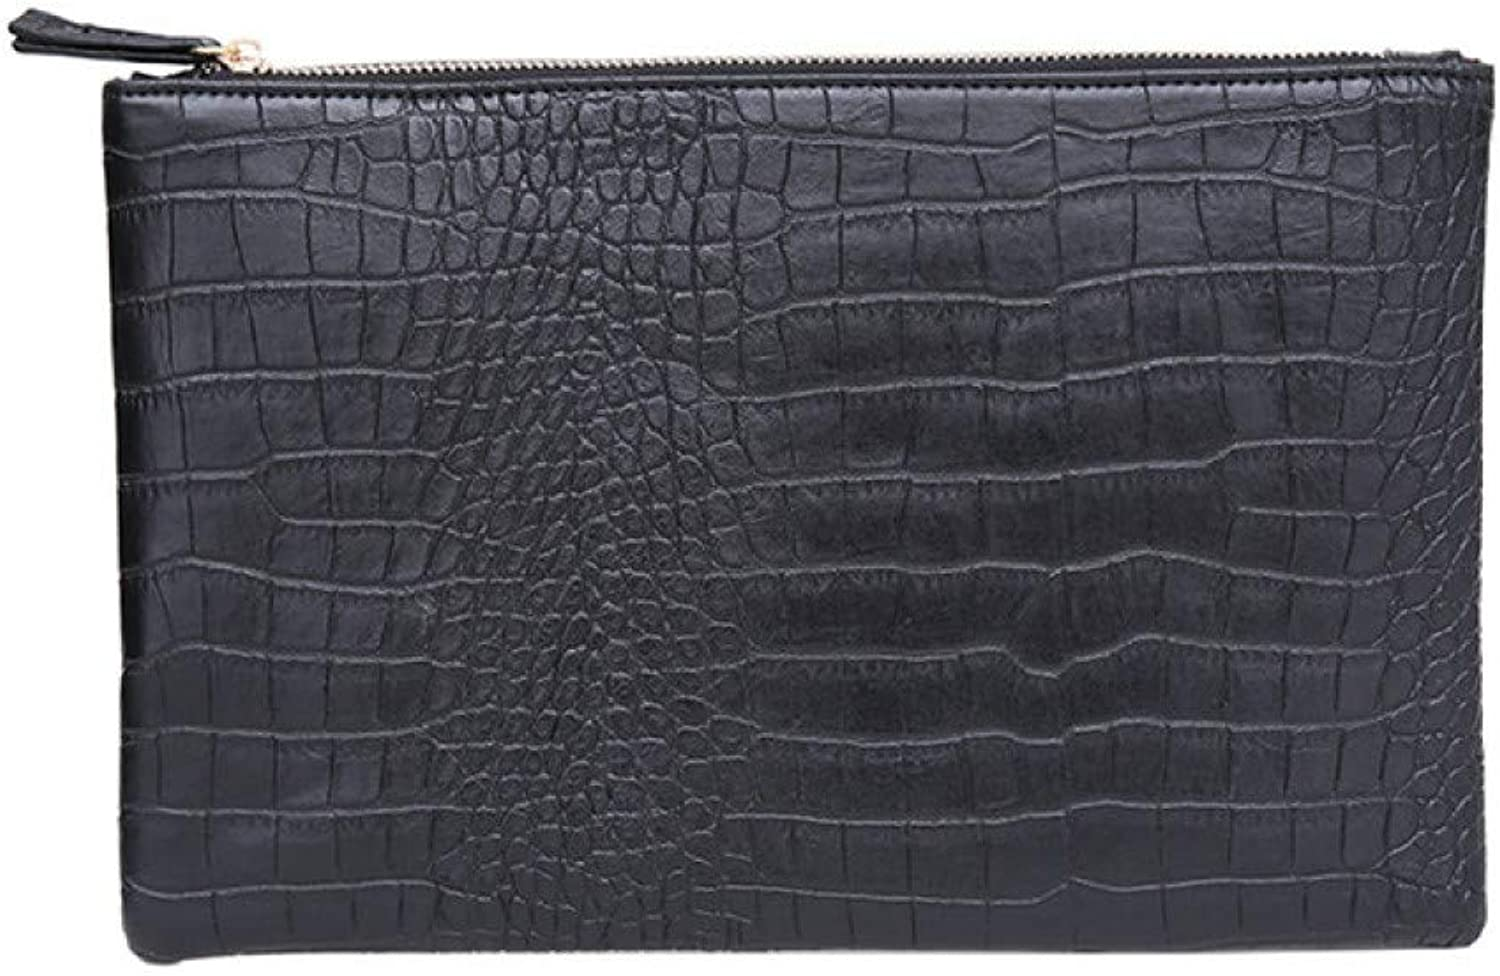 GSYDXKB Fashion Crocodile Grain Women Leather Envelope Clutch Bag Women Bag Clutch Evening Bag Female Bag Clutches